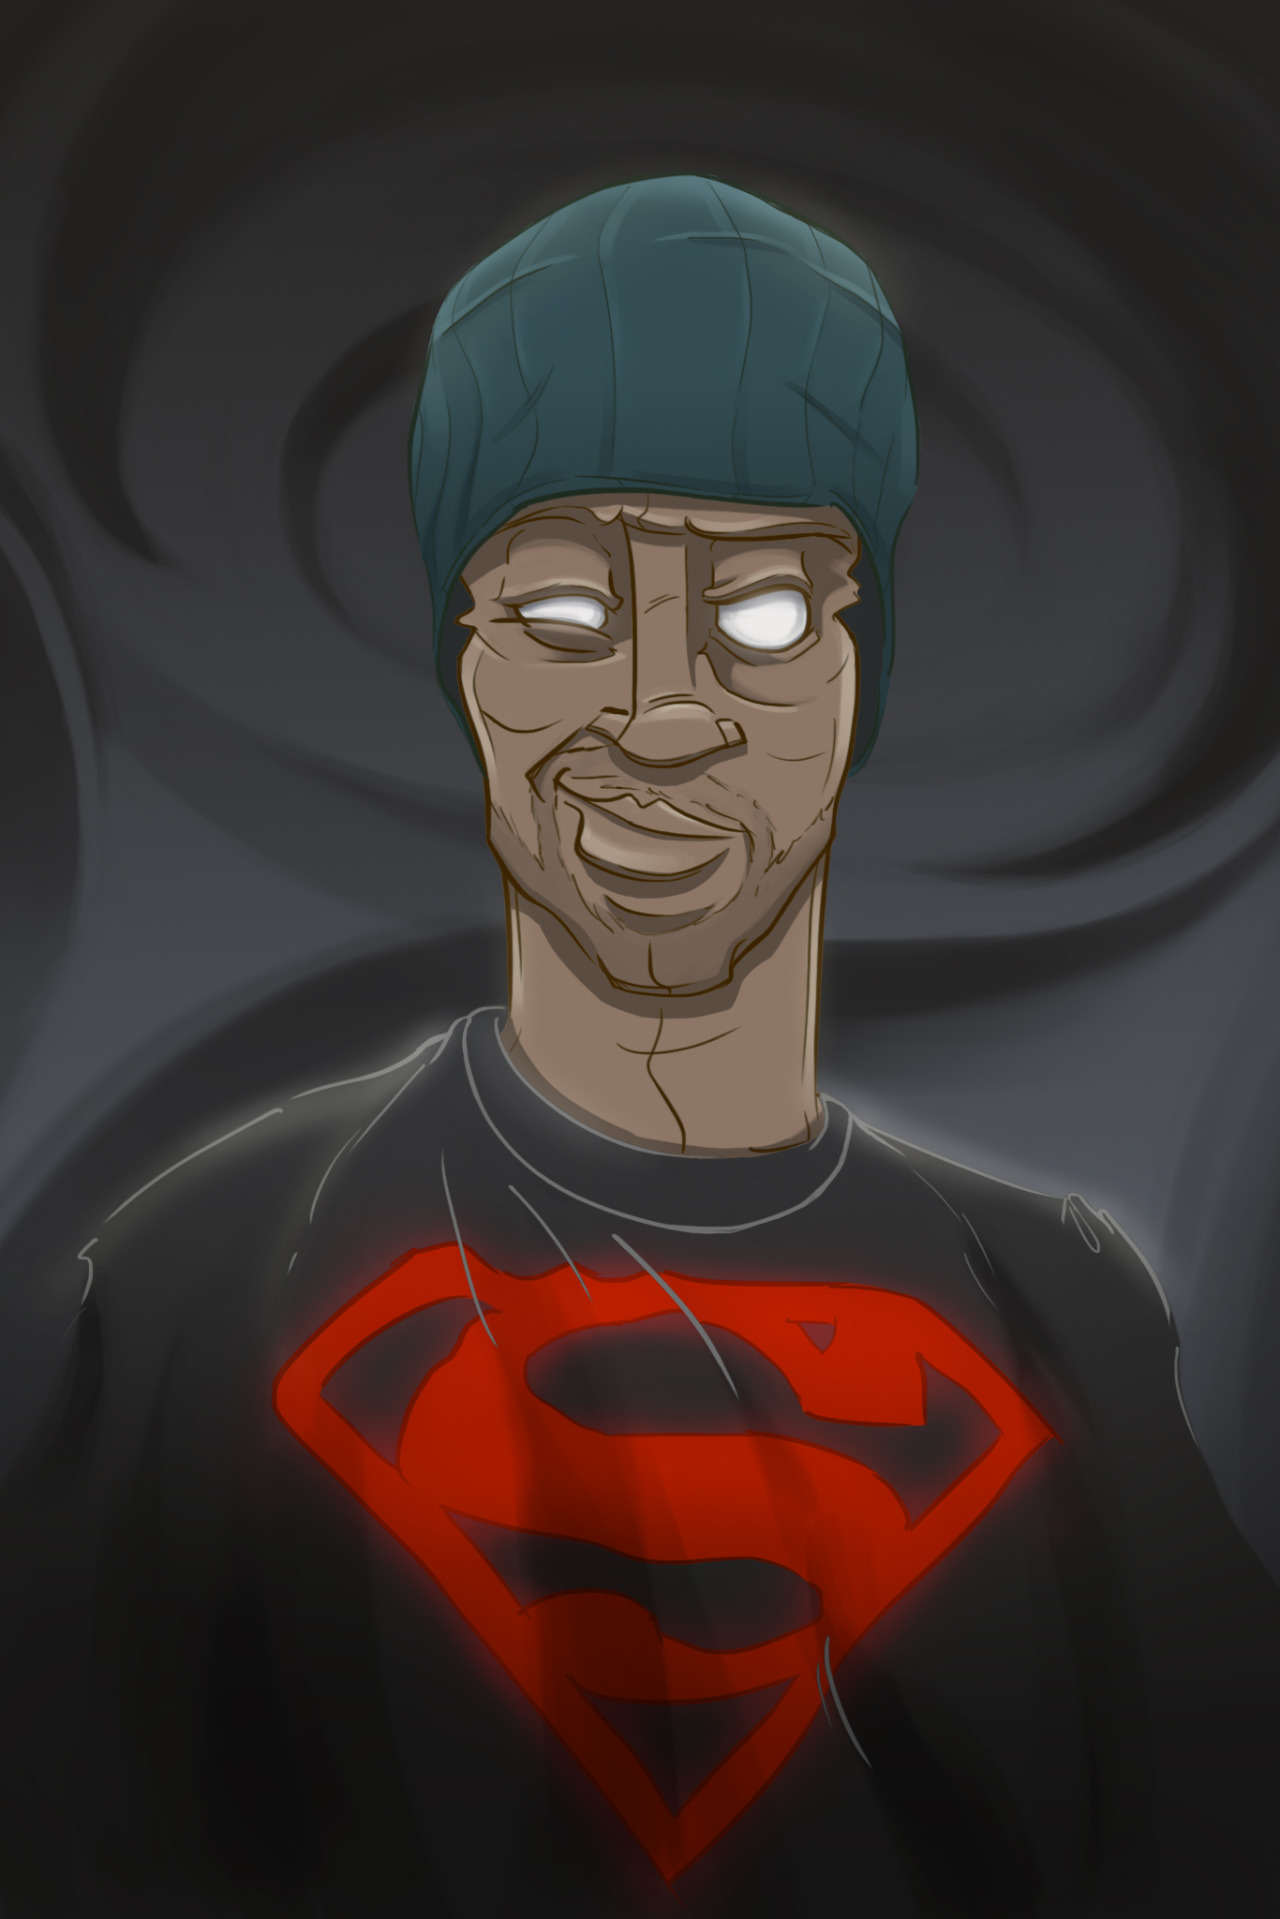 """My homie Ossian """"Big O"""" Mendoza did this awesome digital portrait of me! Call me SuperT0ne! Check out more of his work on his site right here: Ossian Mendoza"""